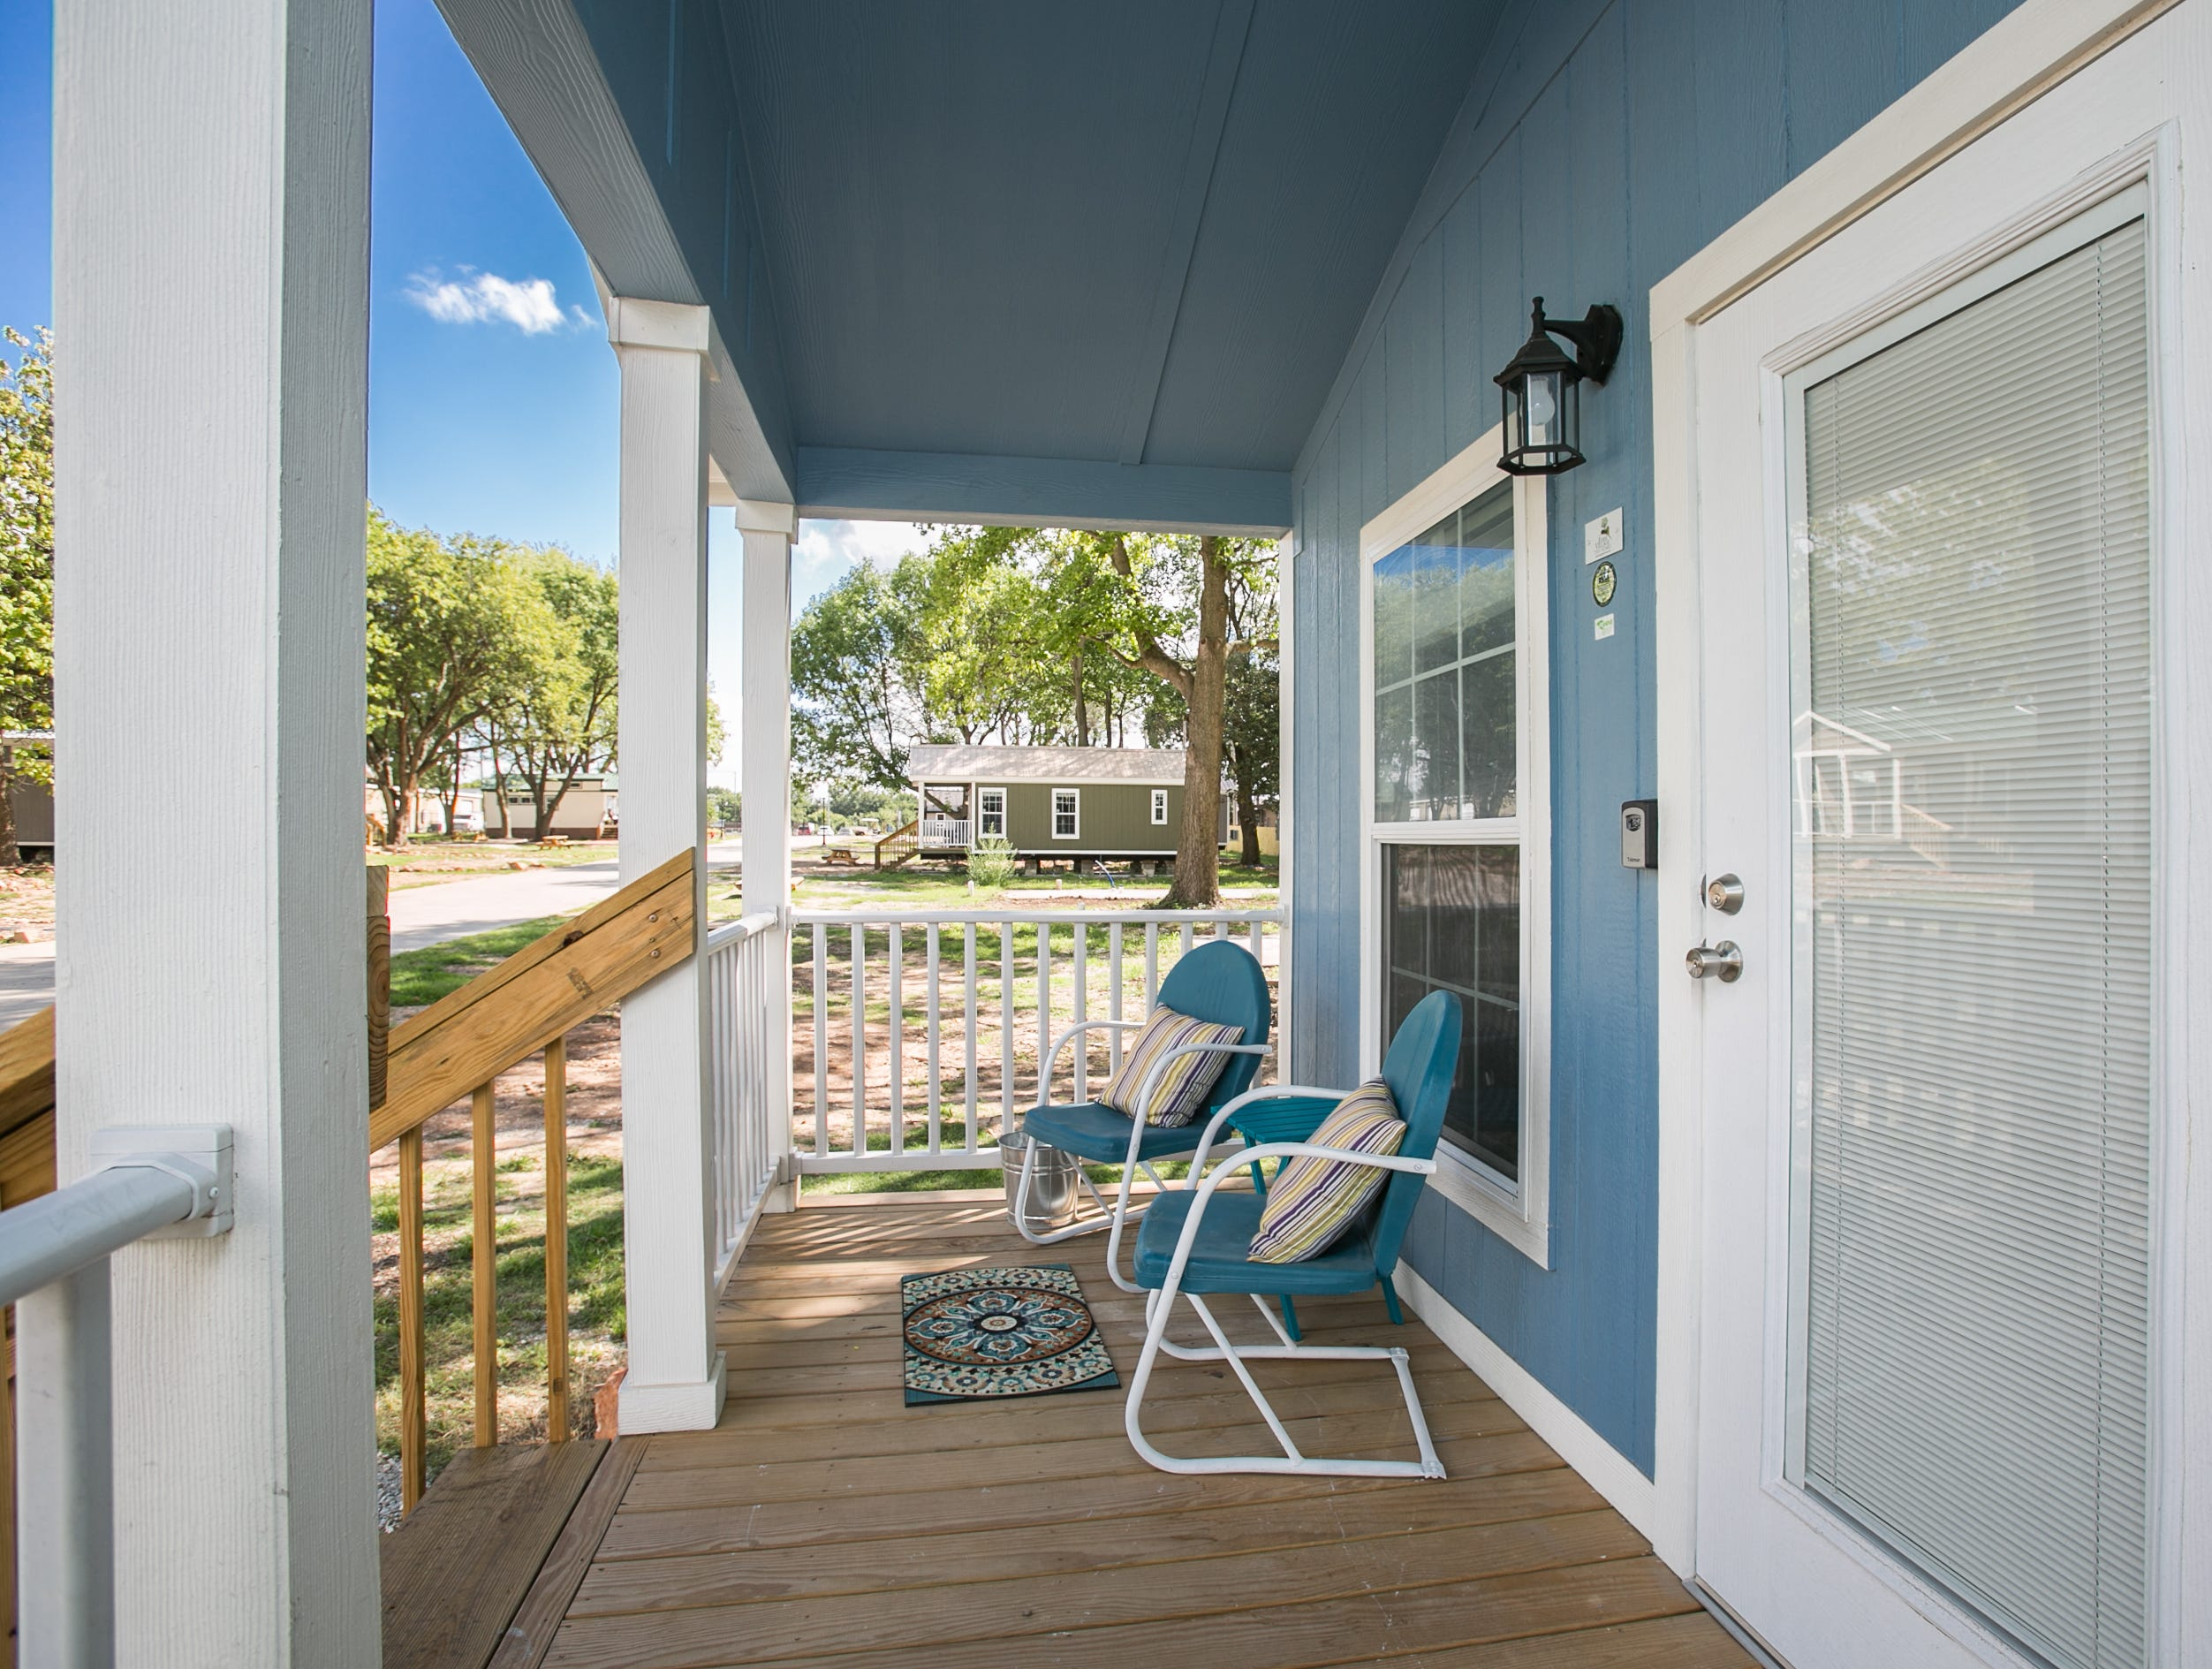 This cheery porch is ready for its new tenant to chat with visitors or just enjoy the day. Eden Village home donated by Mike and Mary Walker taken on September 4th, 2018.